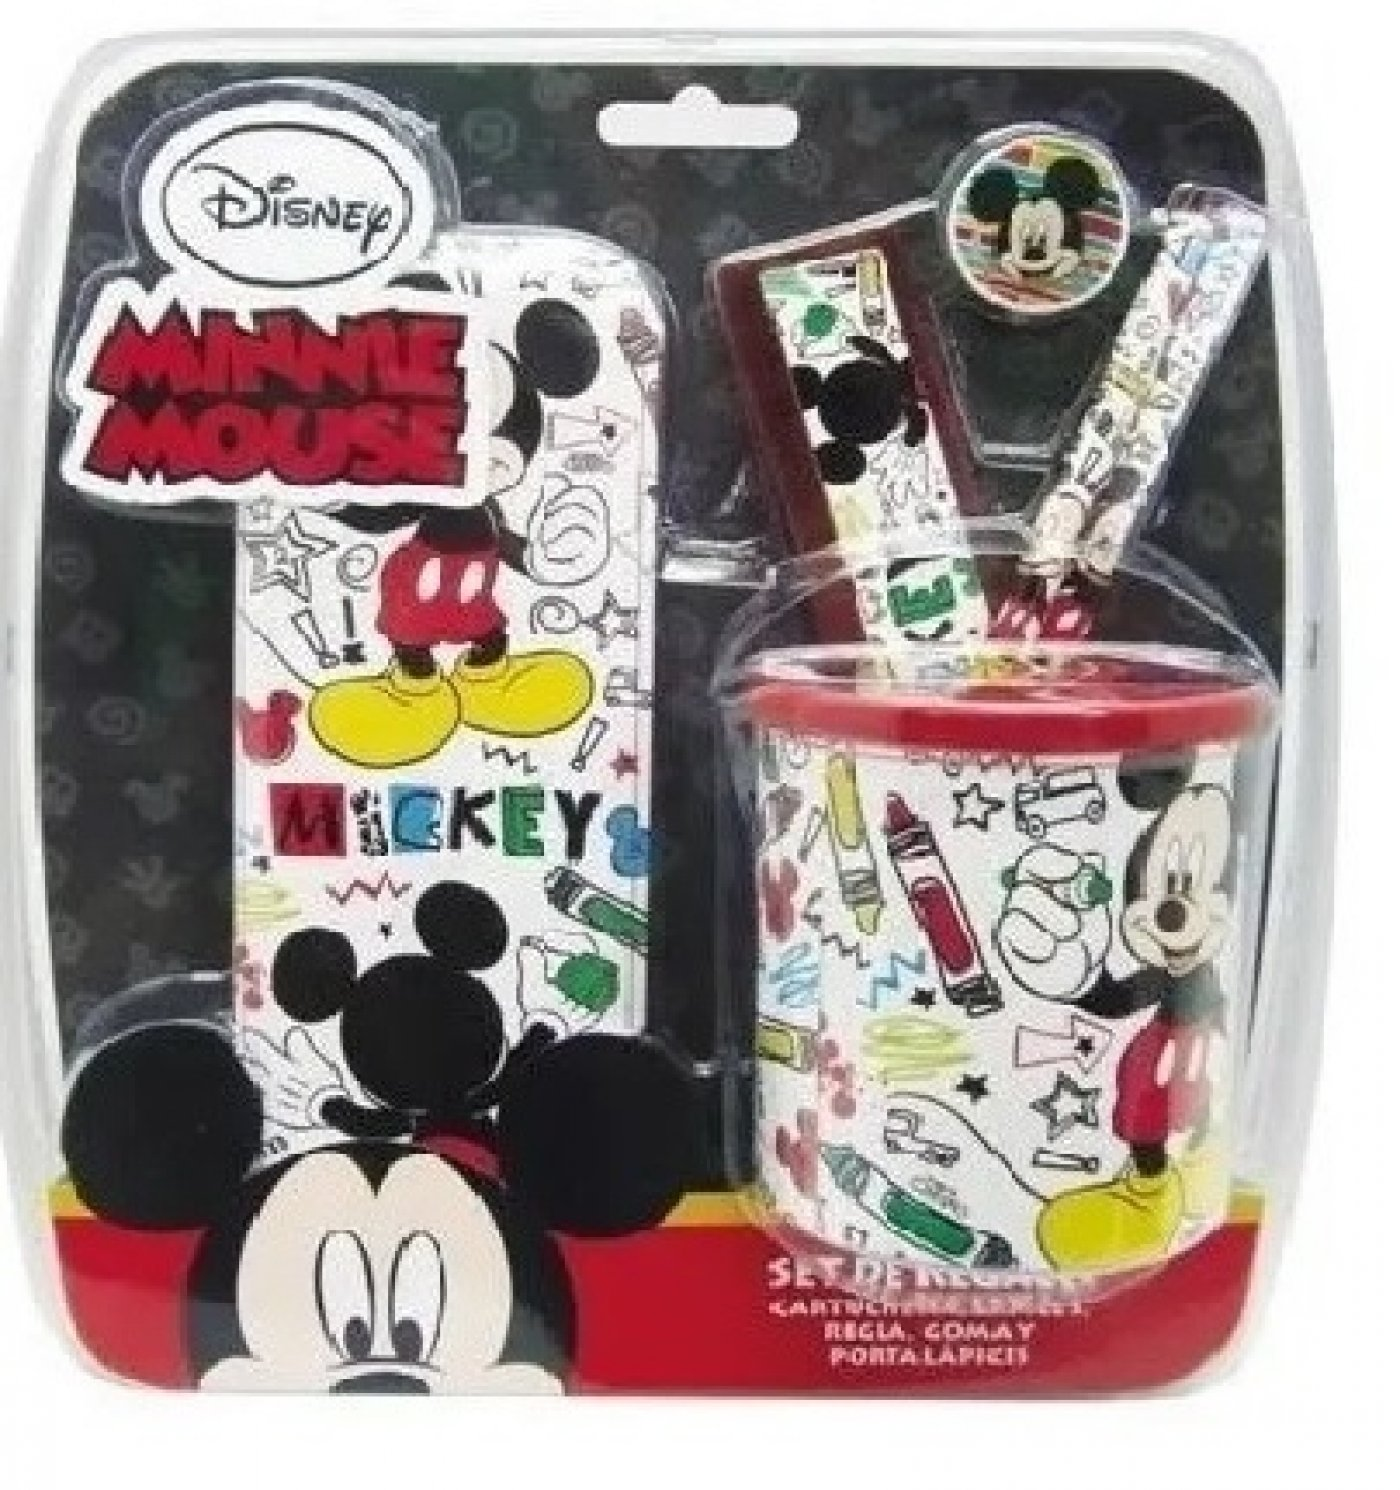 Set Escolar De Regalo Mickey Mouse